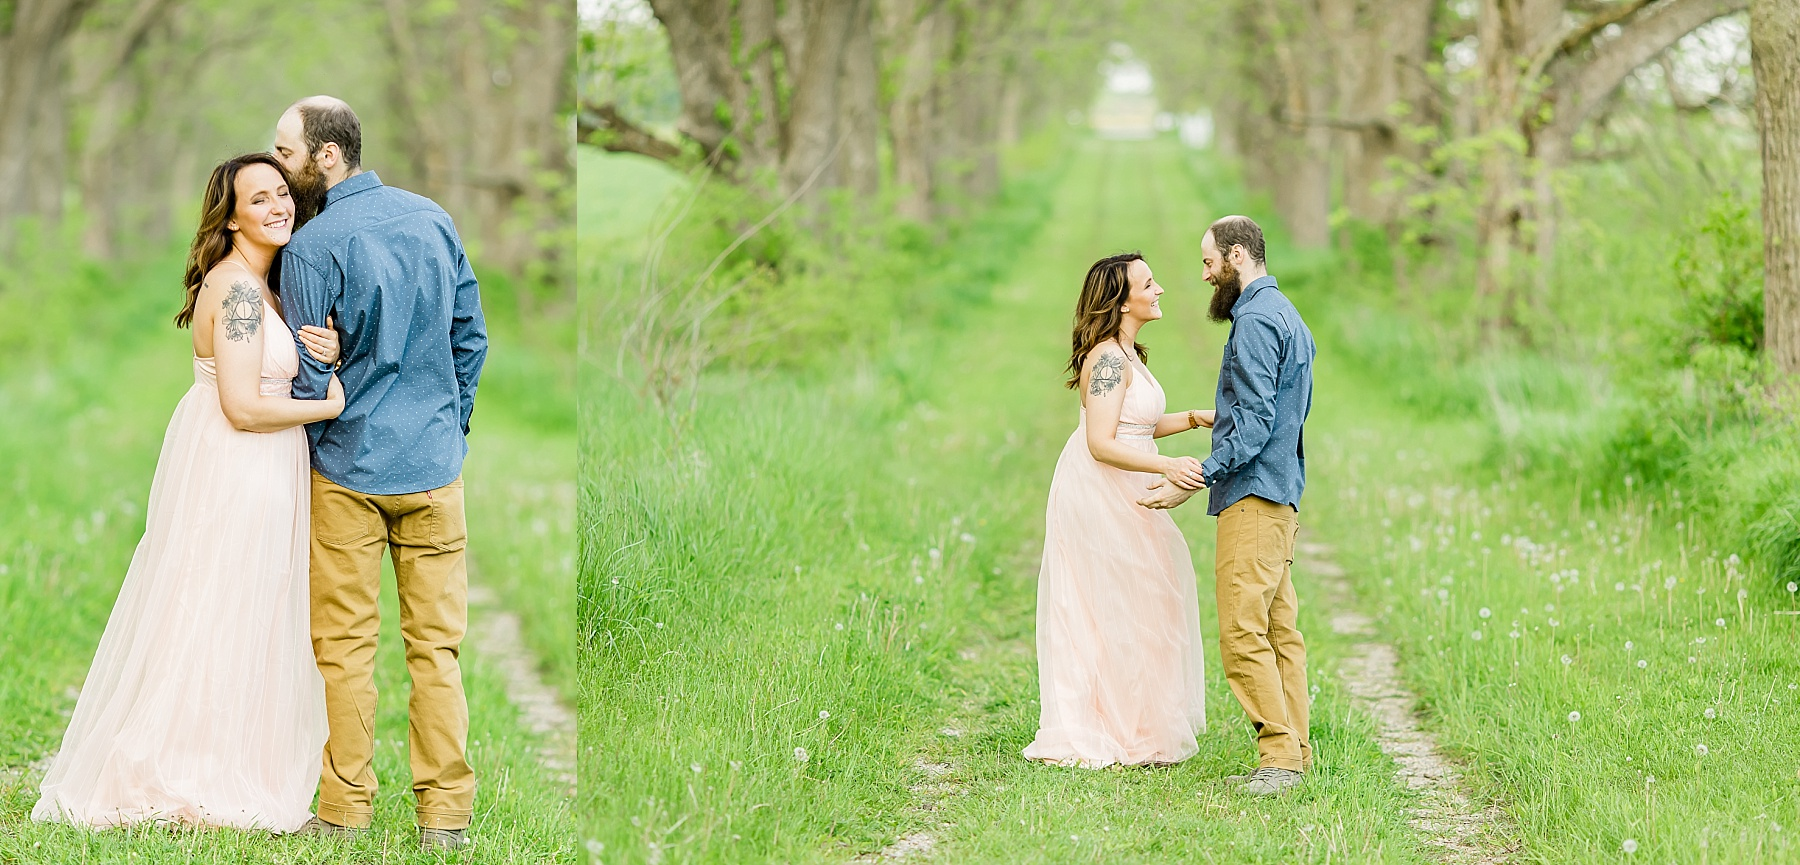 monticello indiana wedding engagement photography simple adventure weird_0034.jpg